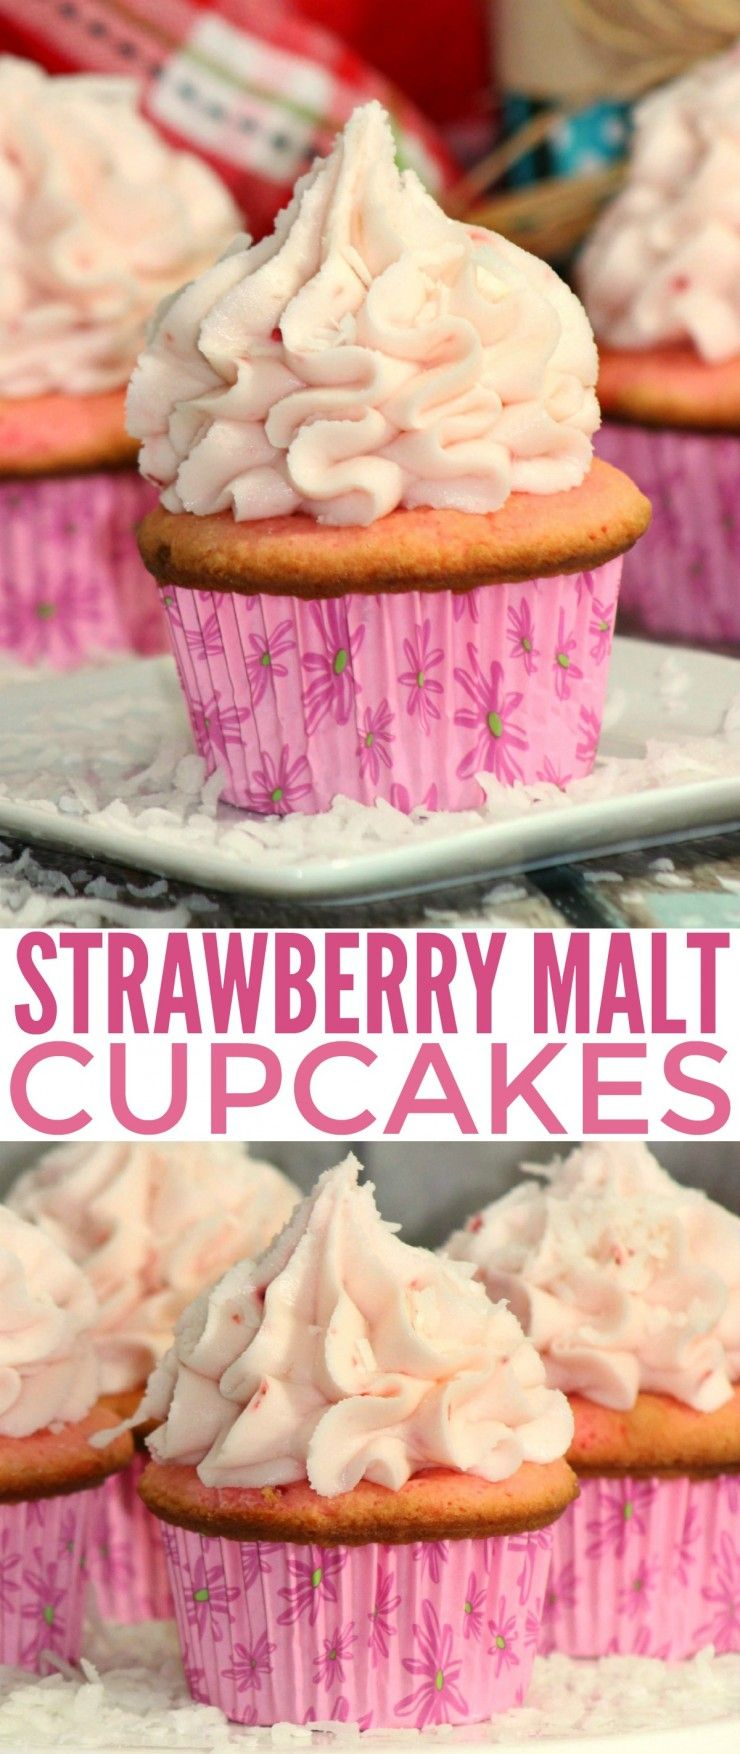 This Strawberry Malt Cupcakes recipe is one of my favourites. A luscious cupcake overflowing with the delicious summer flavour of strawberries.